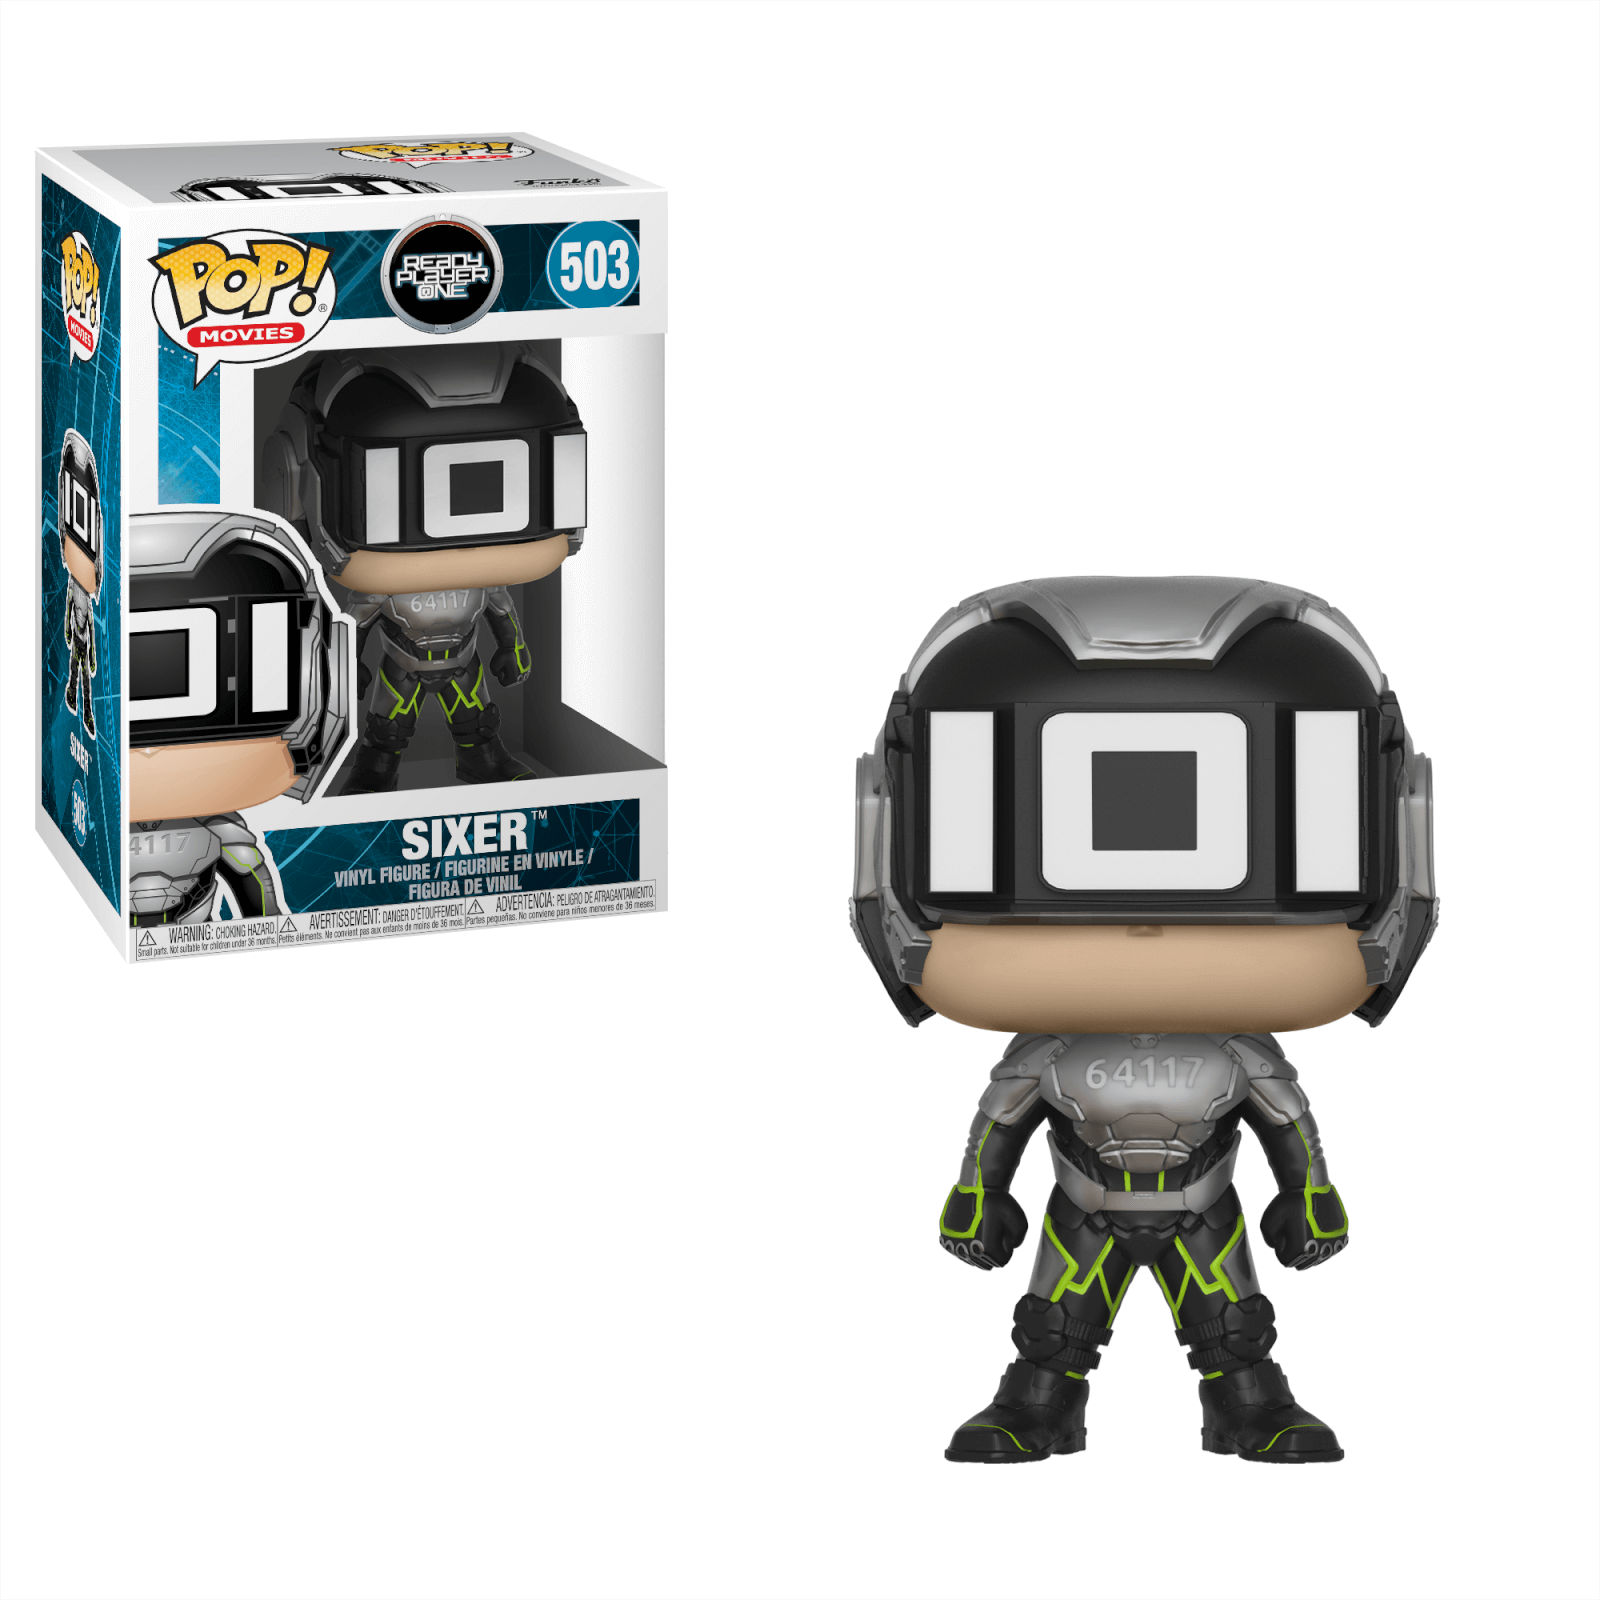 Ready Player One Sixer Pop! Vinyl Figure